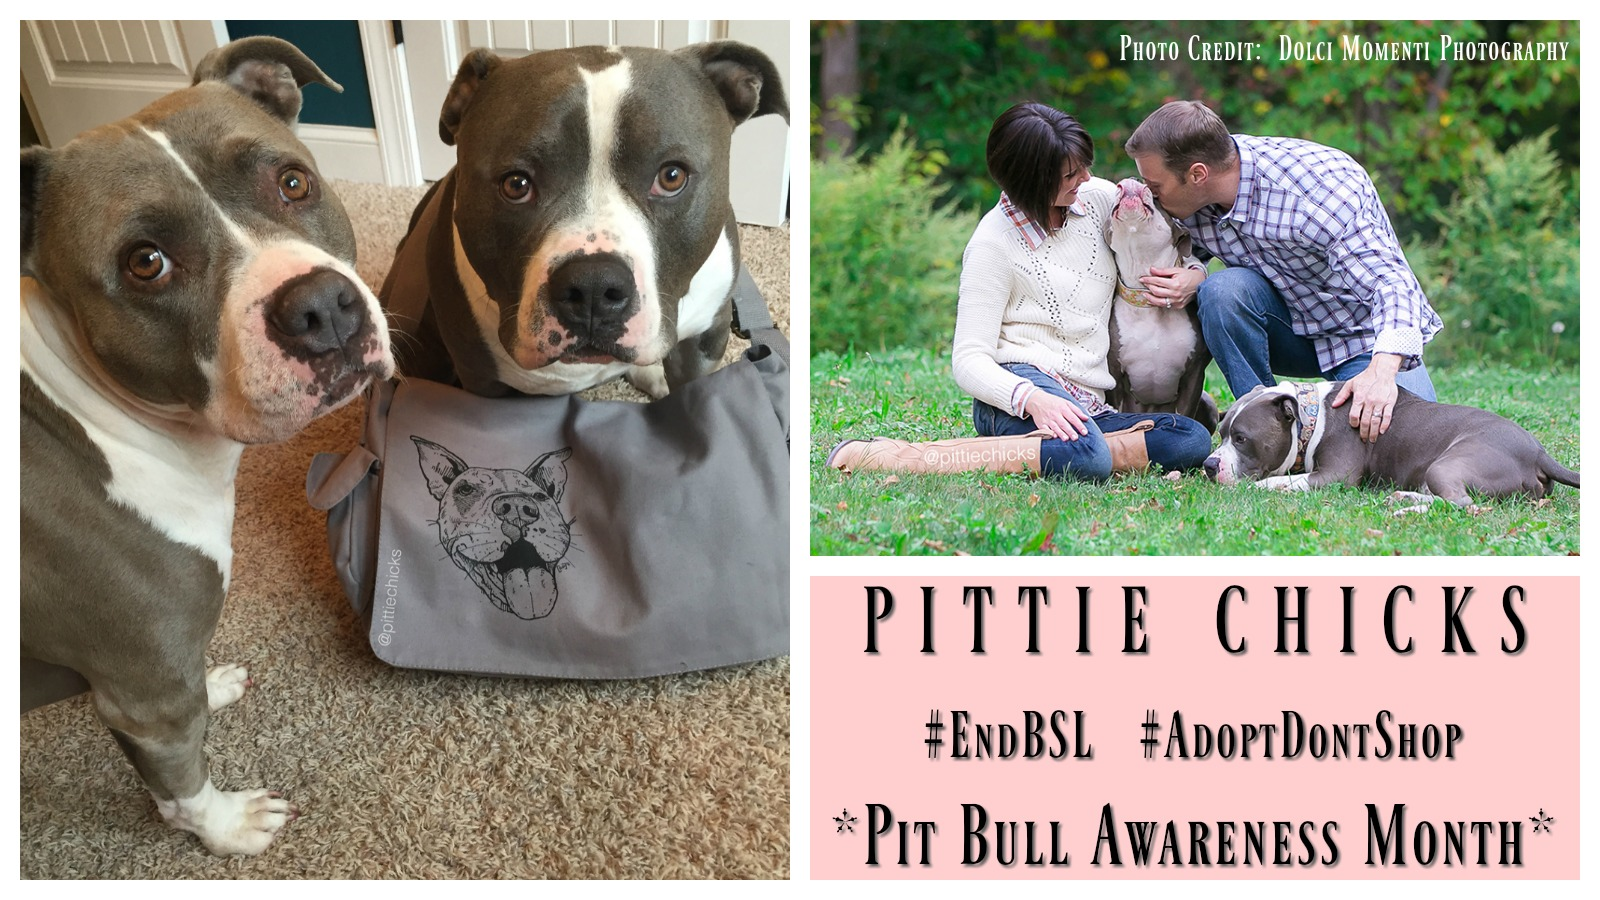 pittie-chicks-featured